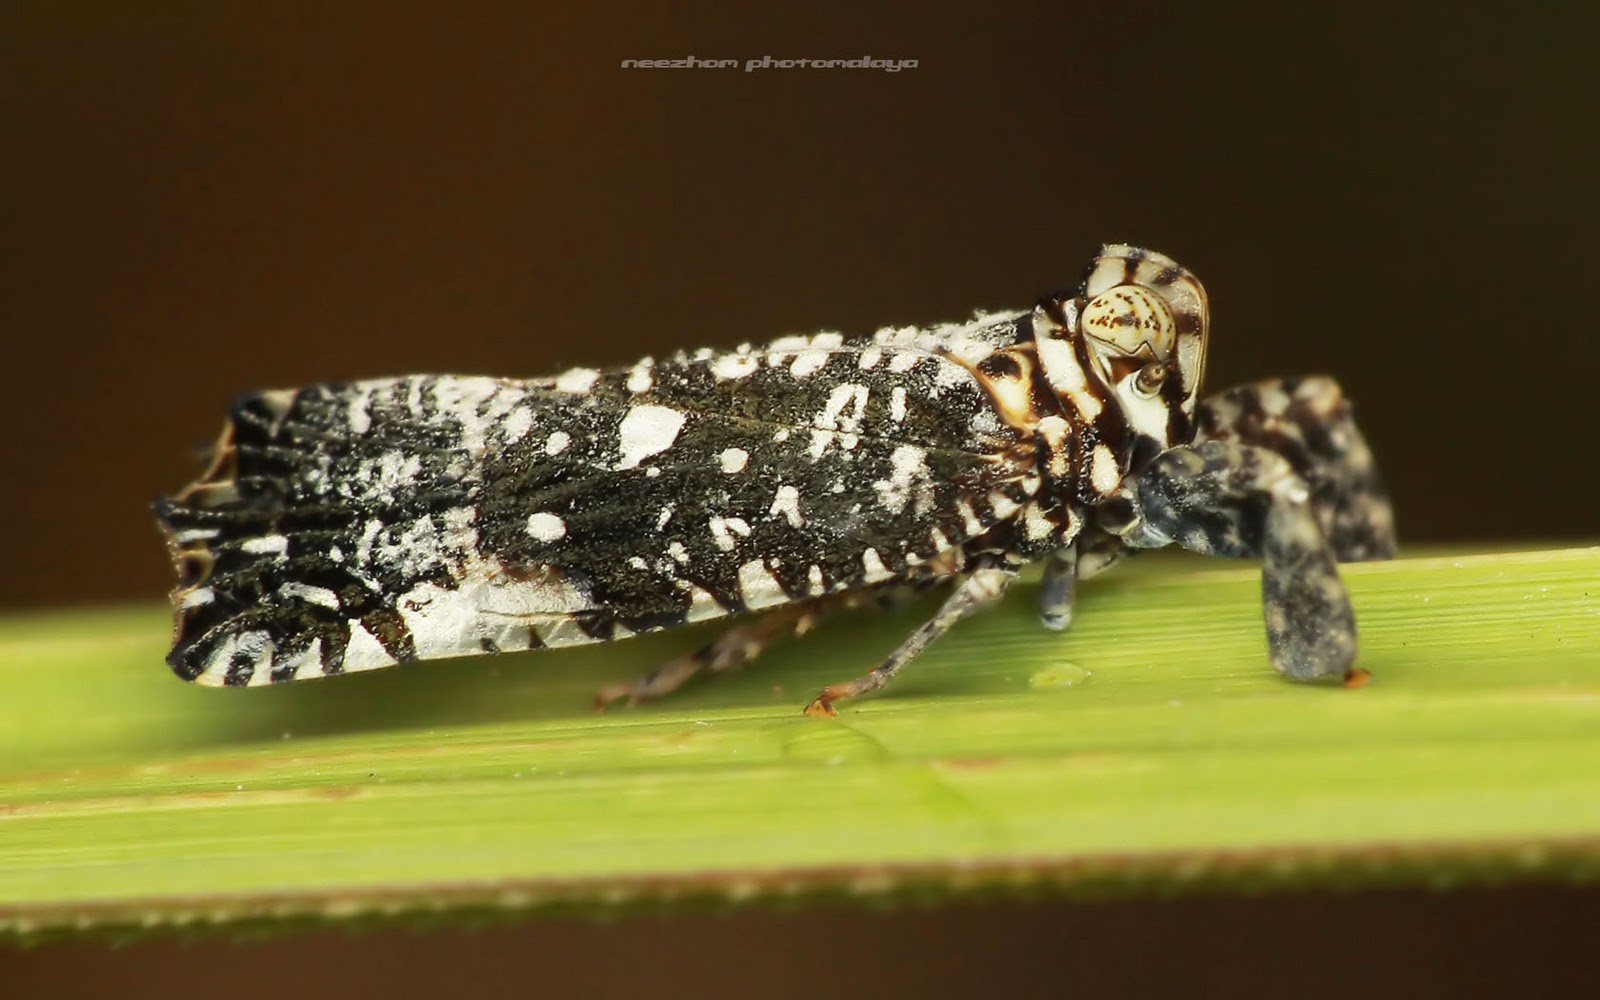 Tiny black Planthopper with white dots